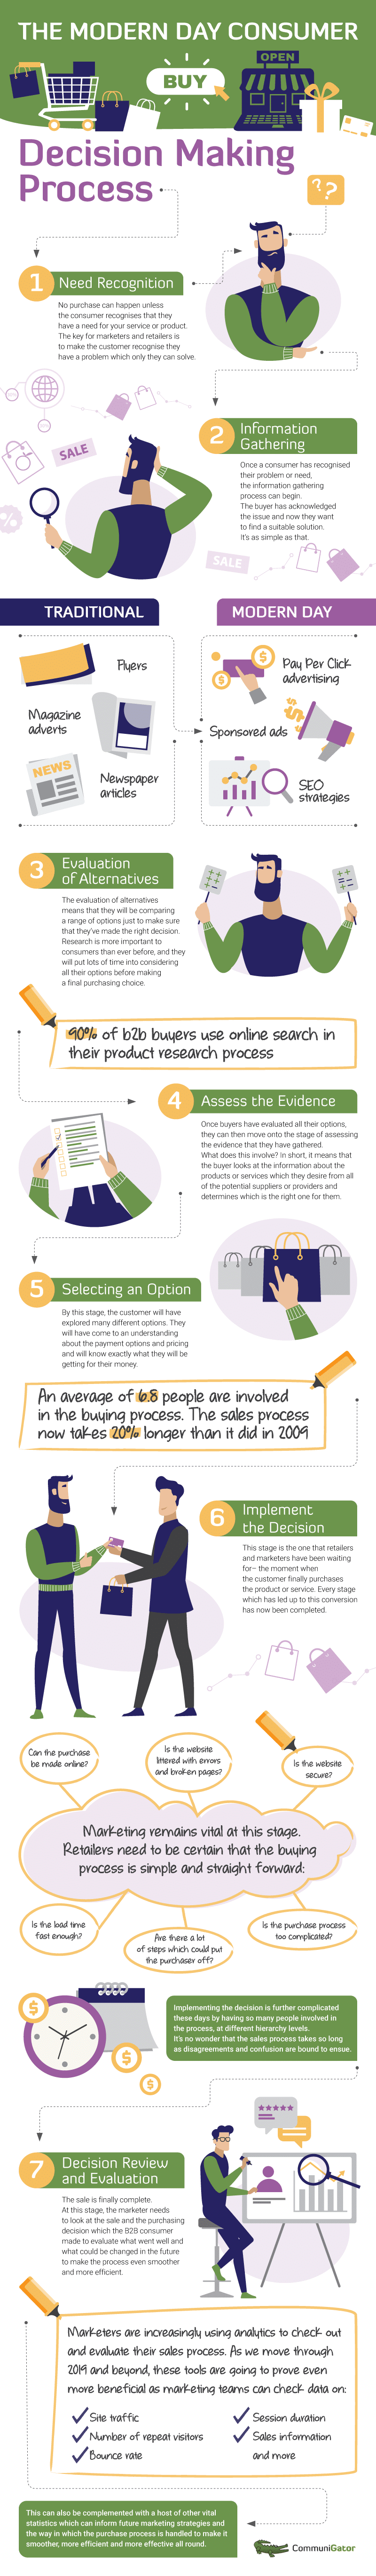 decision to buy infographic